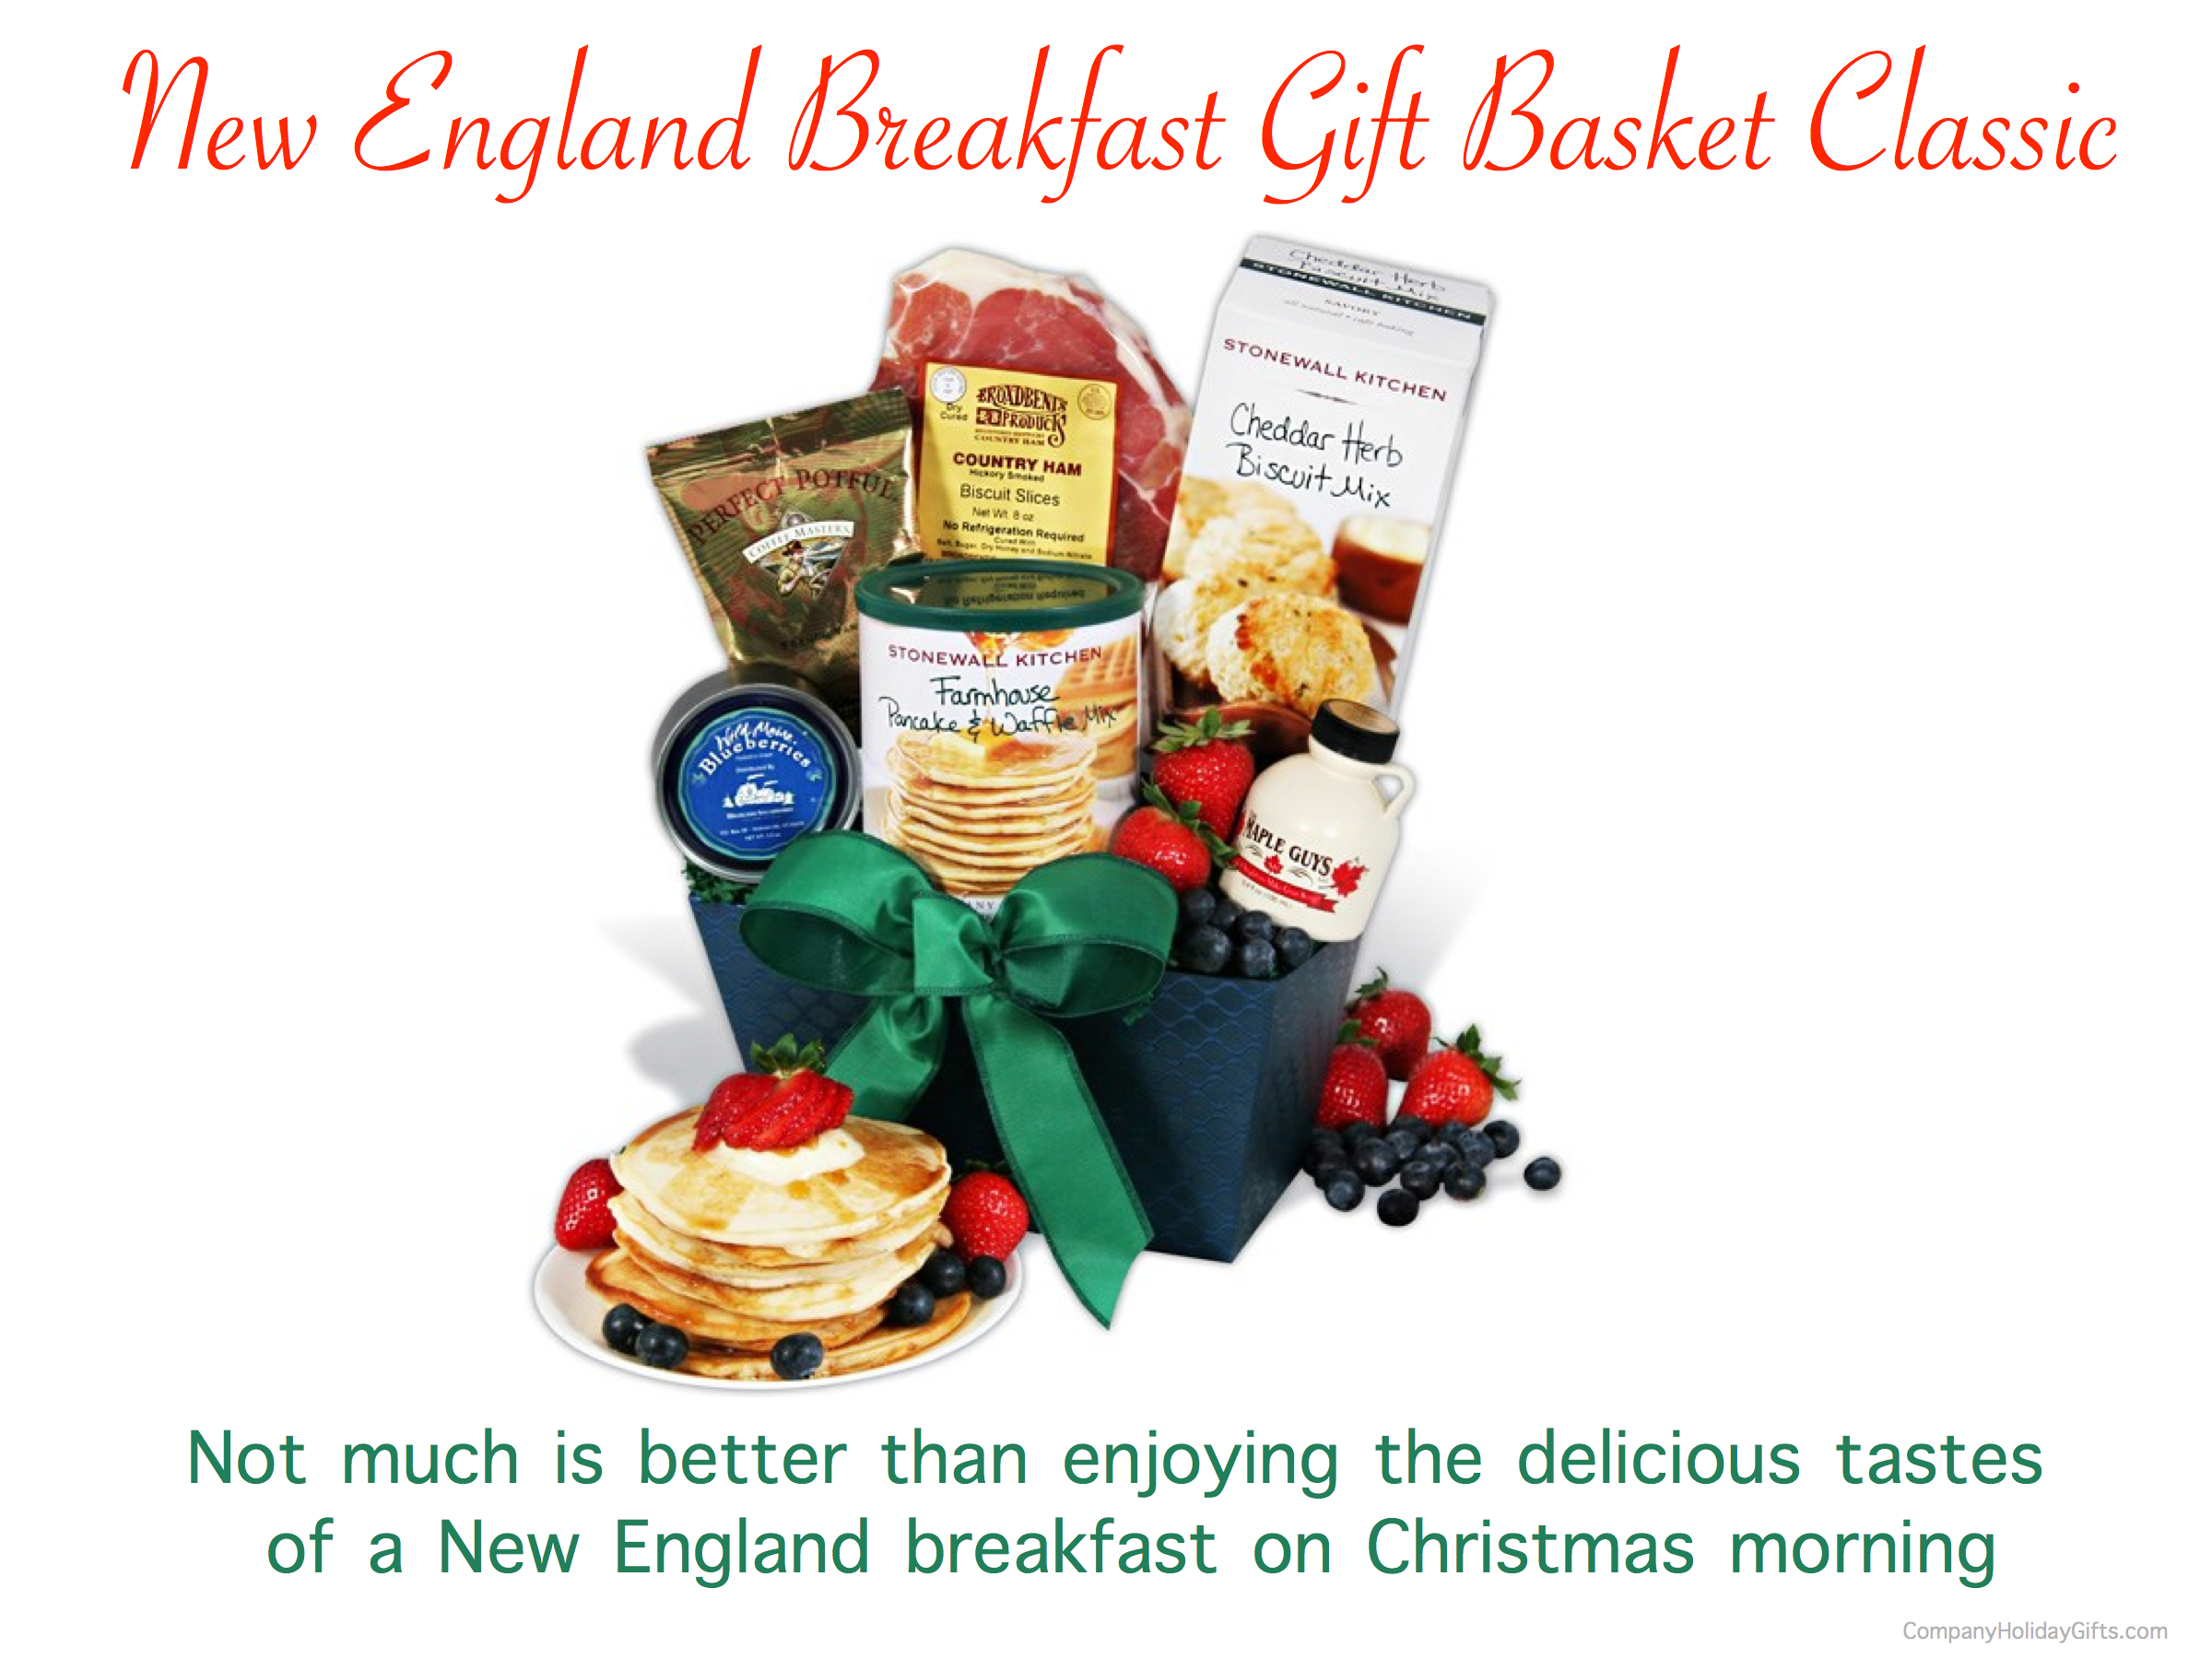 New England Breakfast Gift Basket Classic Holiday Gift, 20 Best Company Holiday Gift Ideas Under $100.00